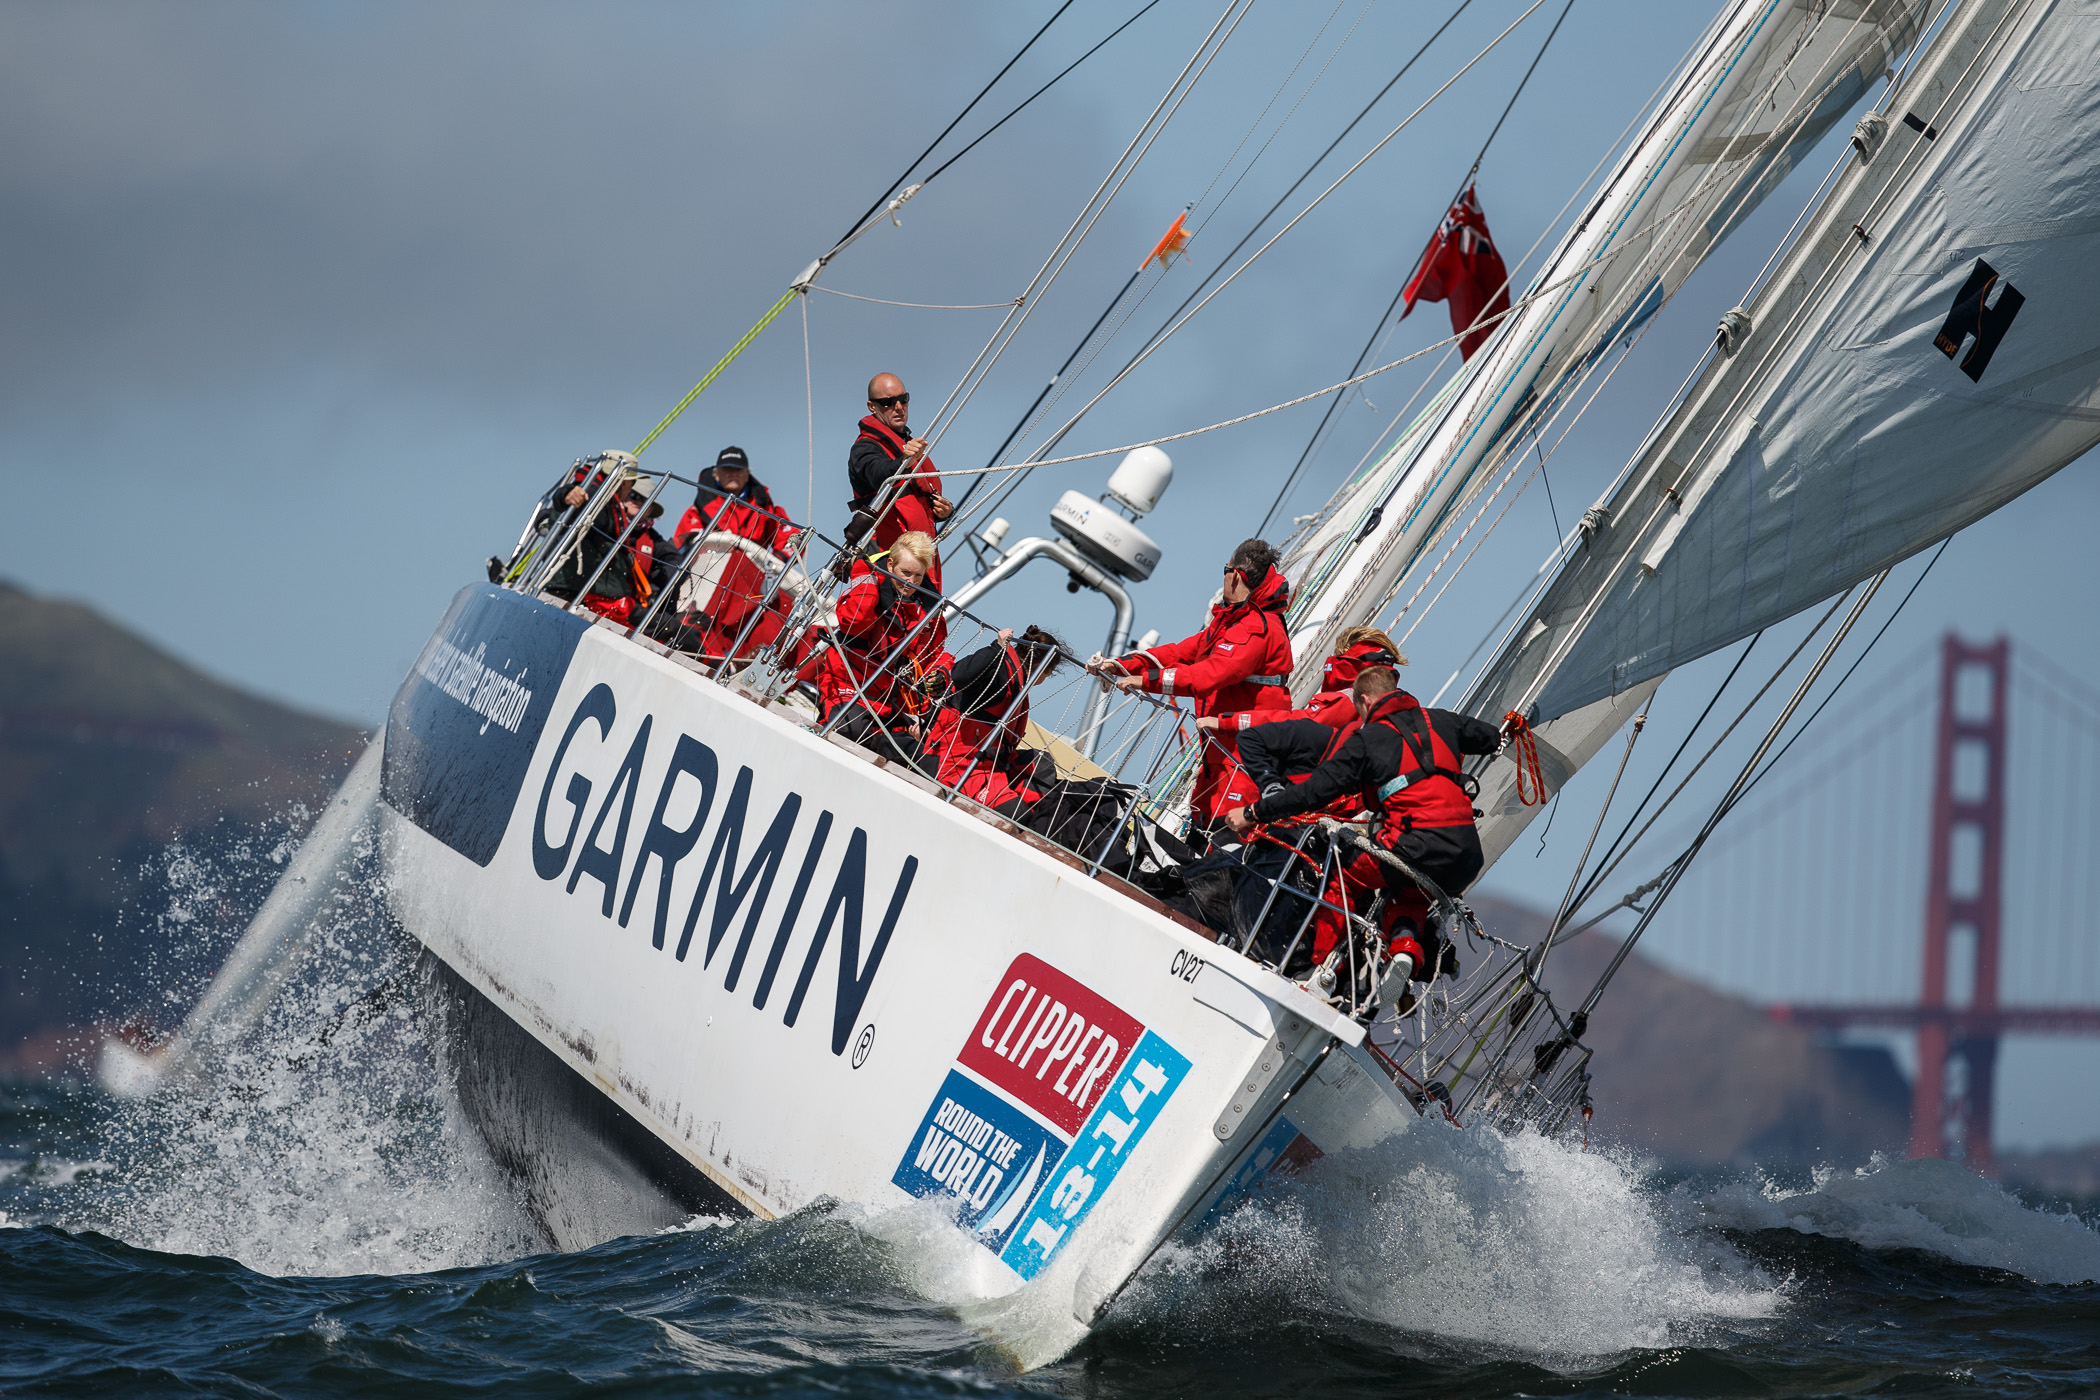 Team Garmin at the start of Race 11 in San Photo by Francisco_Abner Kingman Abner Kingman 2014©